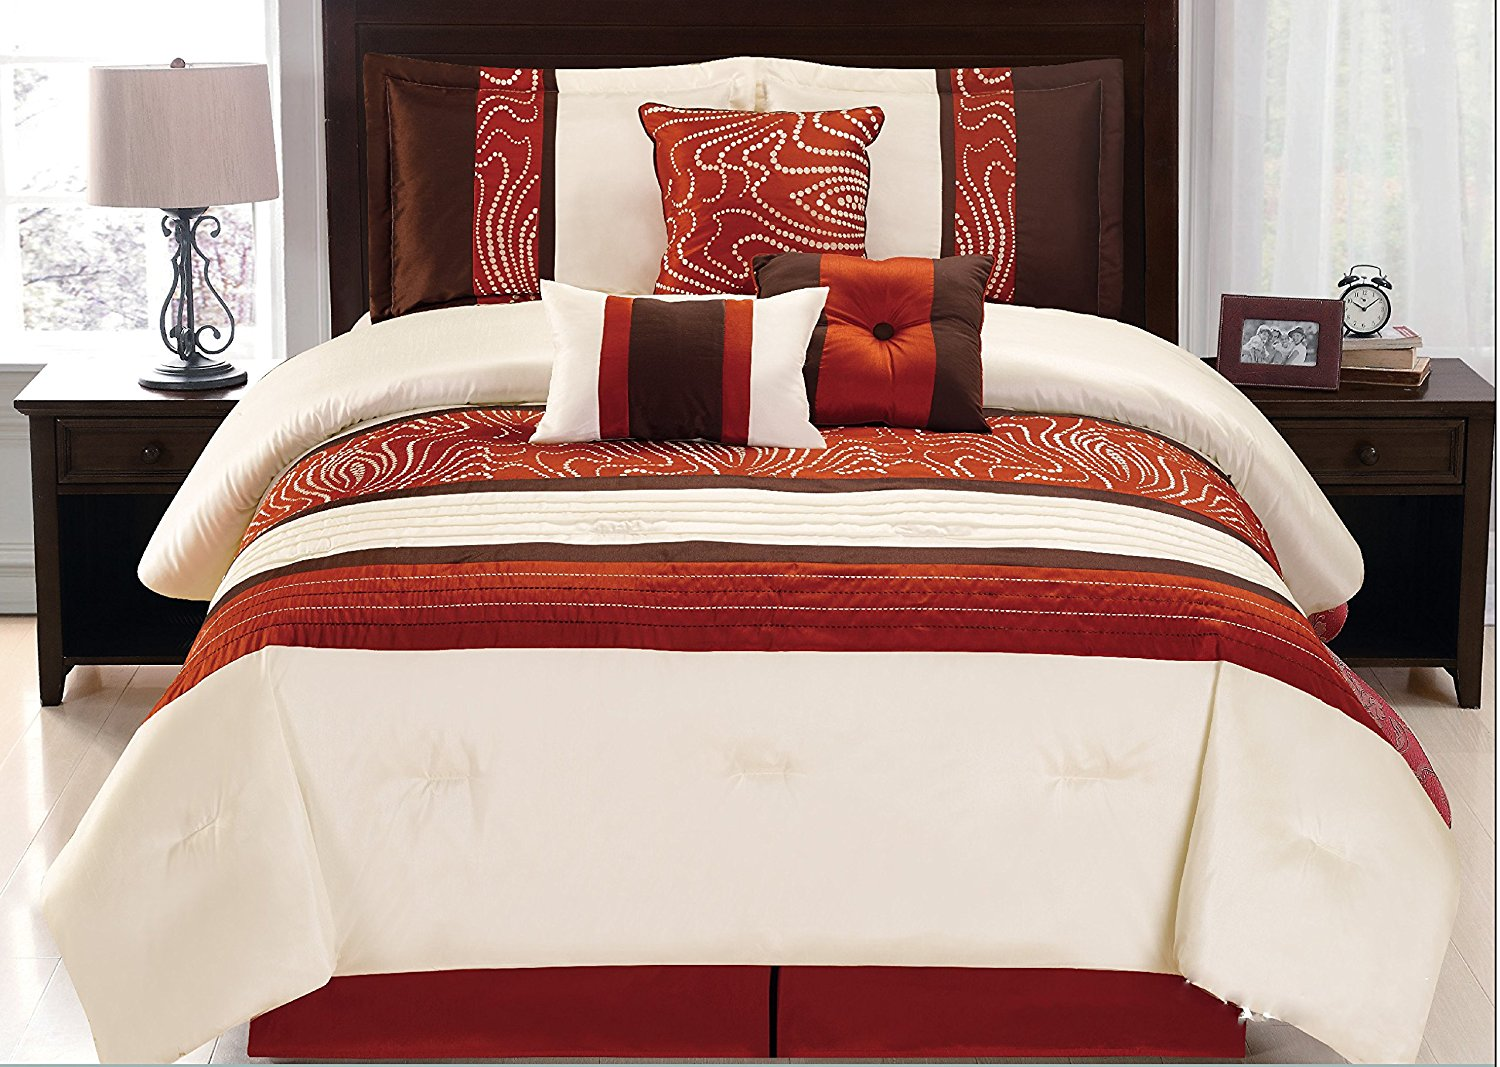 set queen pc piece comforter emerson brown and astonishing pinched pic rust scroll coffee full king taupe orange pleat embroidered trend for inspiration concept inspiring